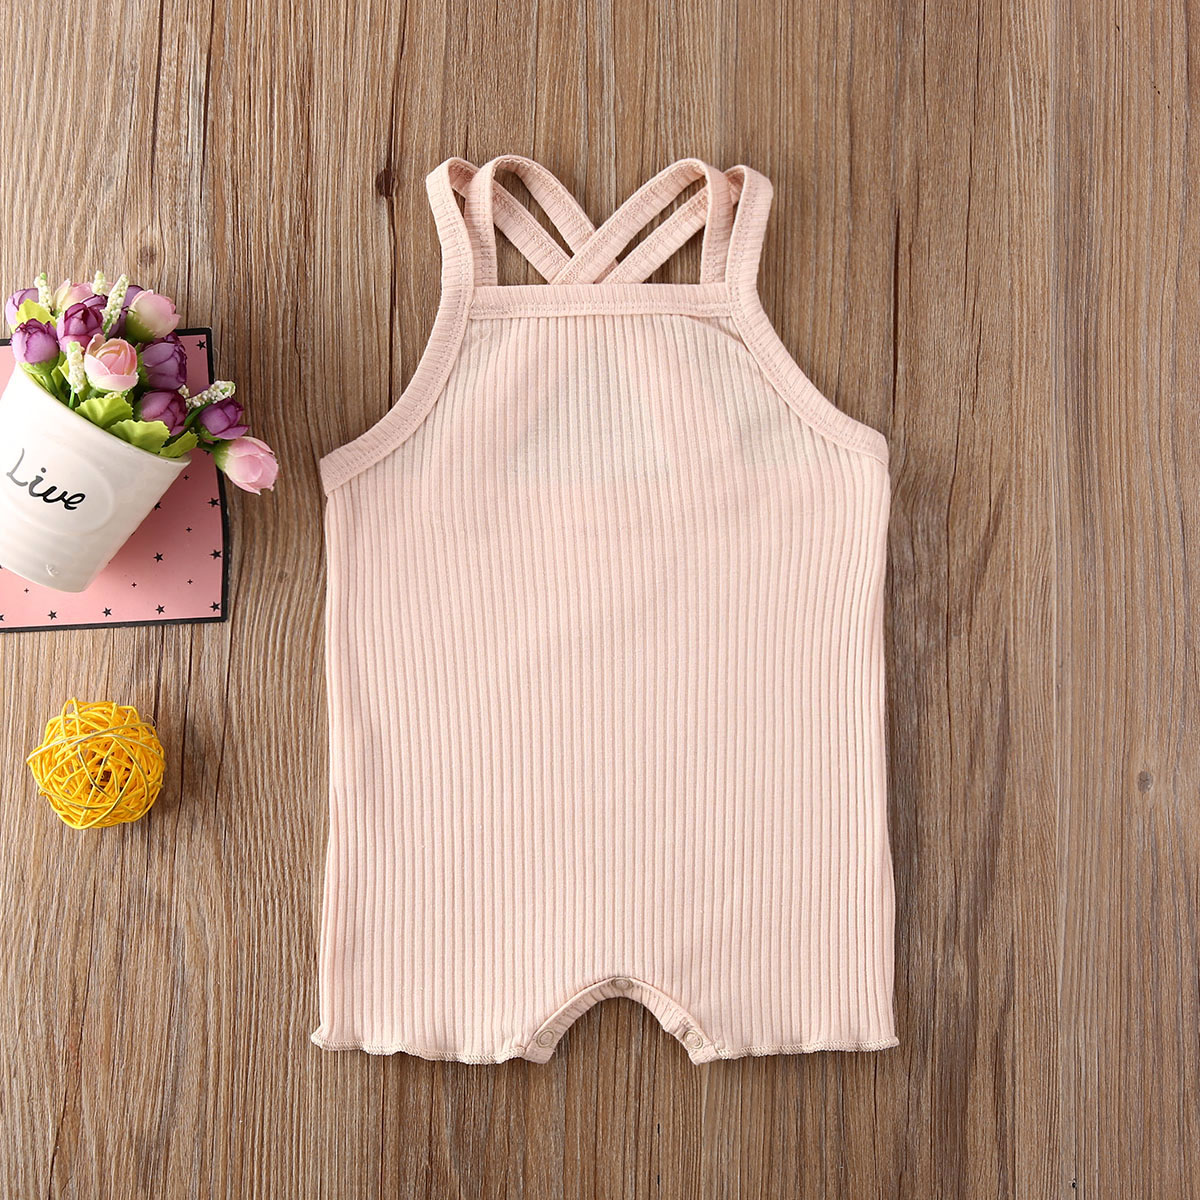 Pudcoco Newborn Baby Boy Girl Clothes Solid Color Knitted Cotton Strap Romper Jumpsuit One-Piece Outfit Sunsuit Summer Clothes